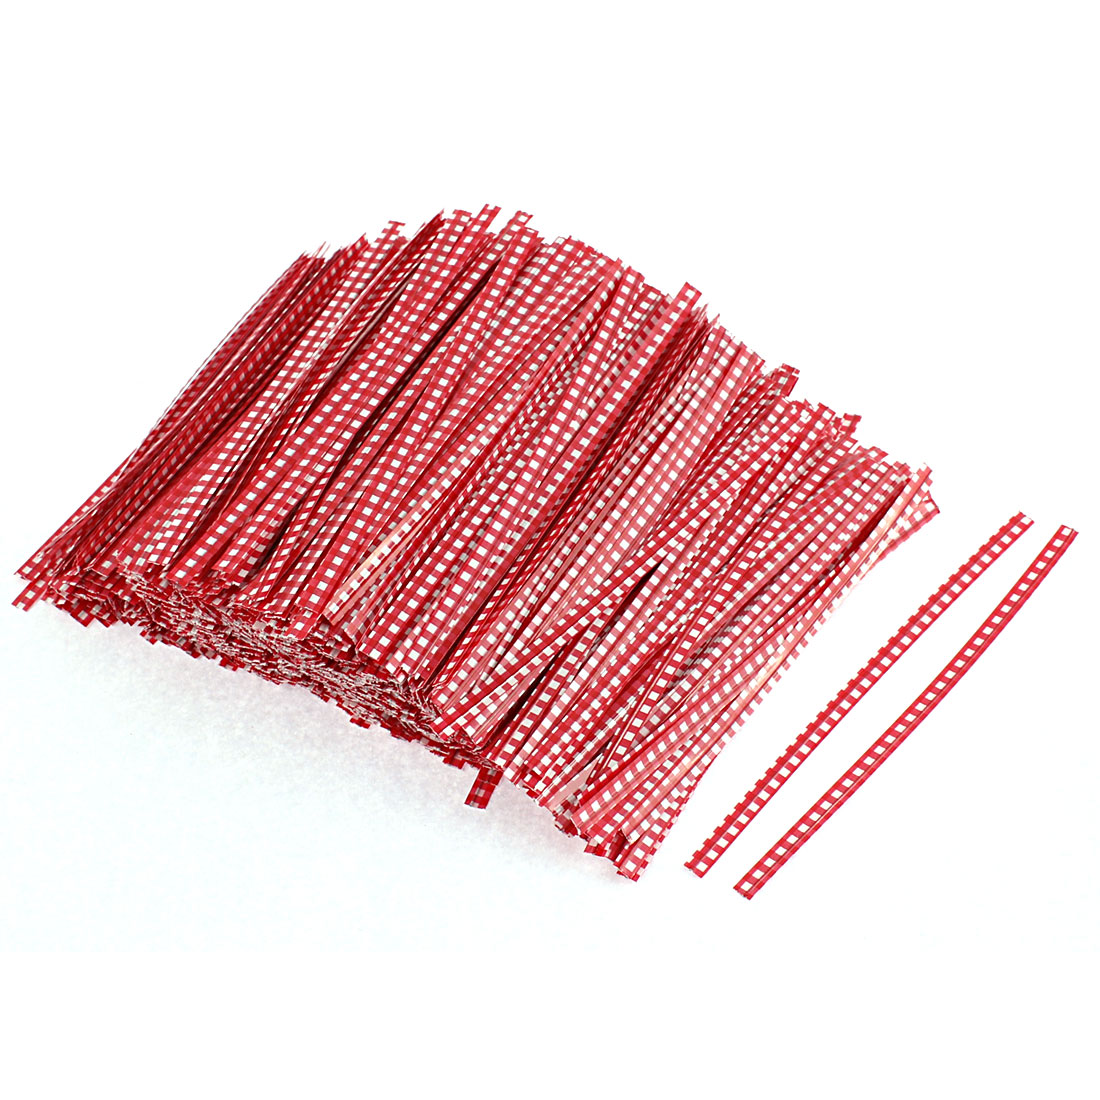 Grid Pattern Bakery Candy Bags Packaging Twist Ties Red 1200PCS